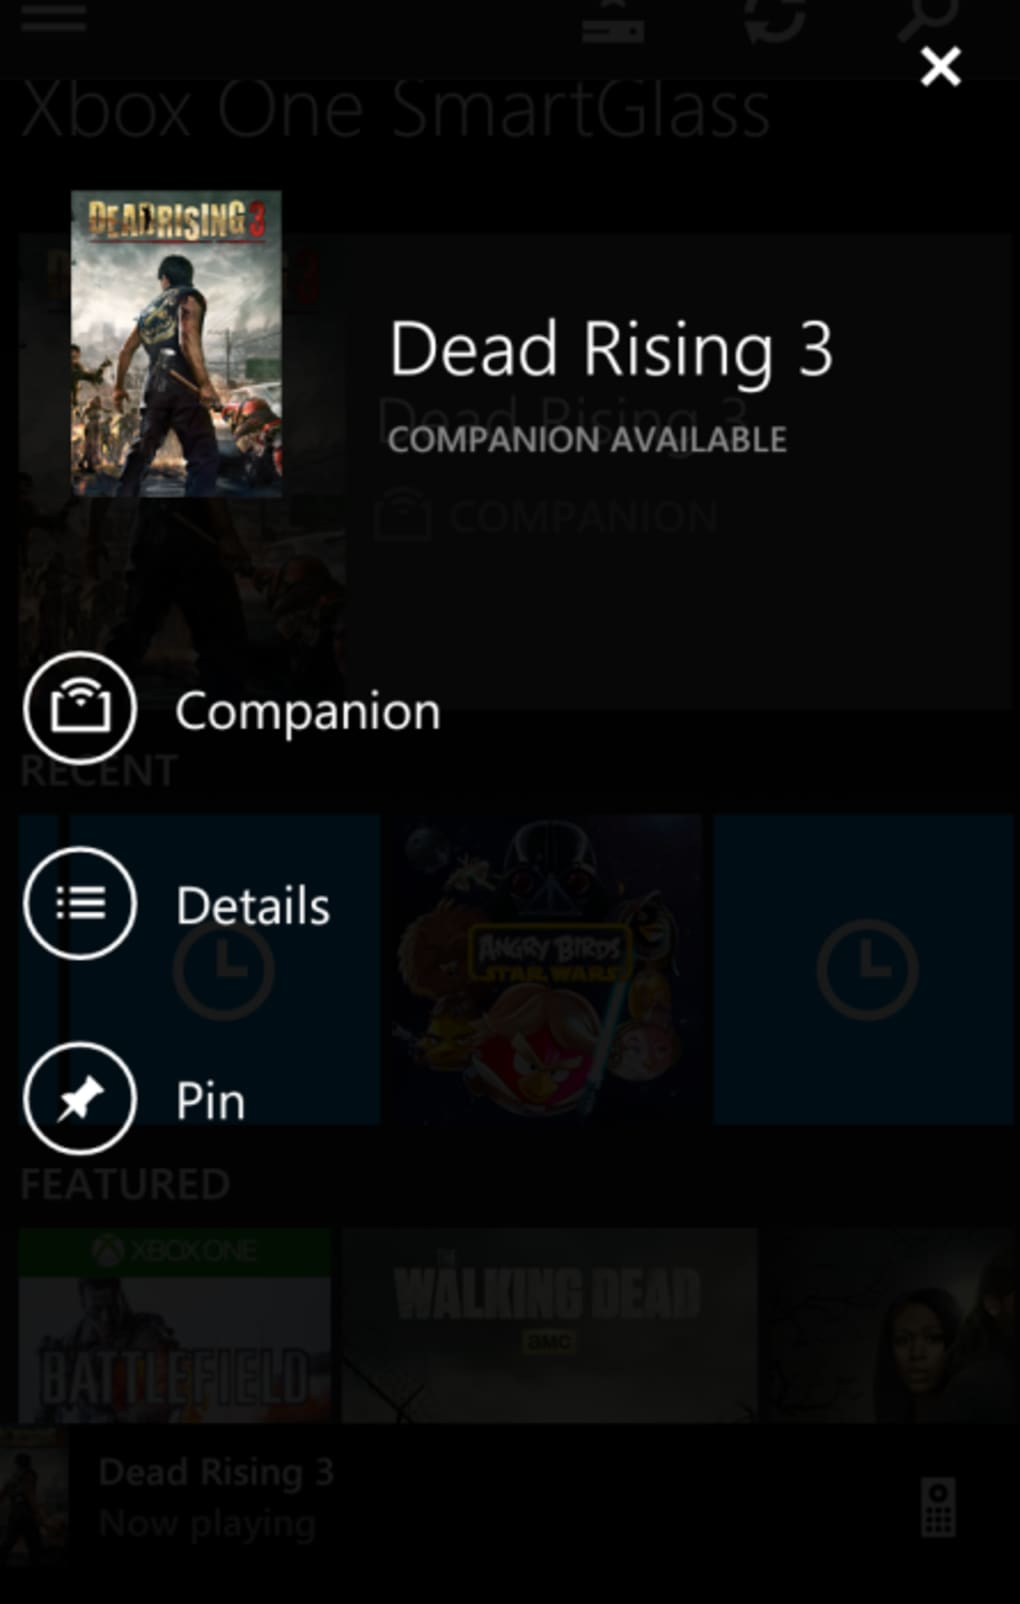 Xbox One SmartGlass for Android - Download